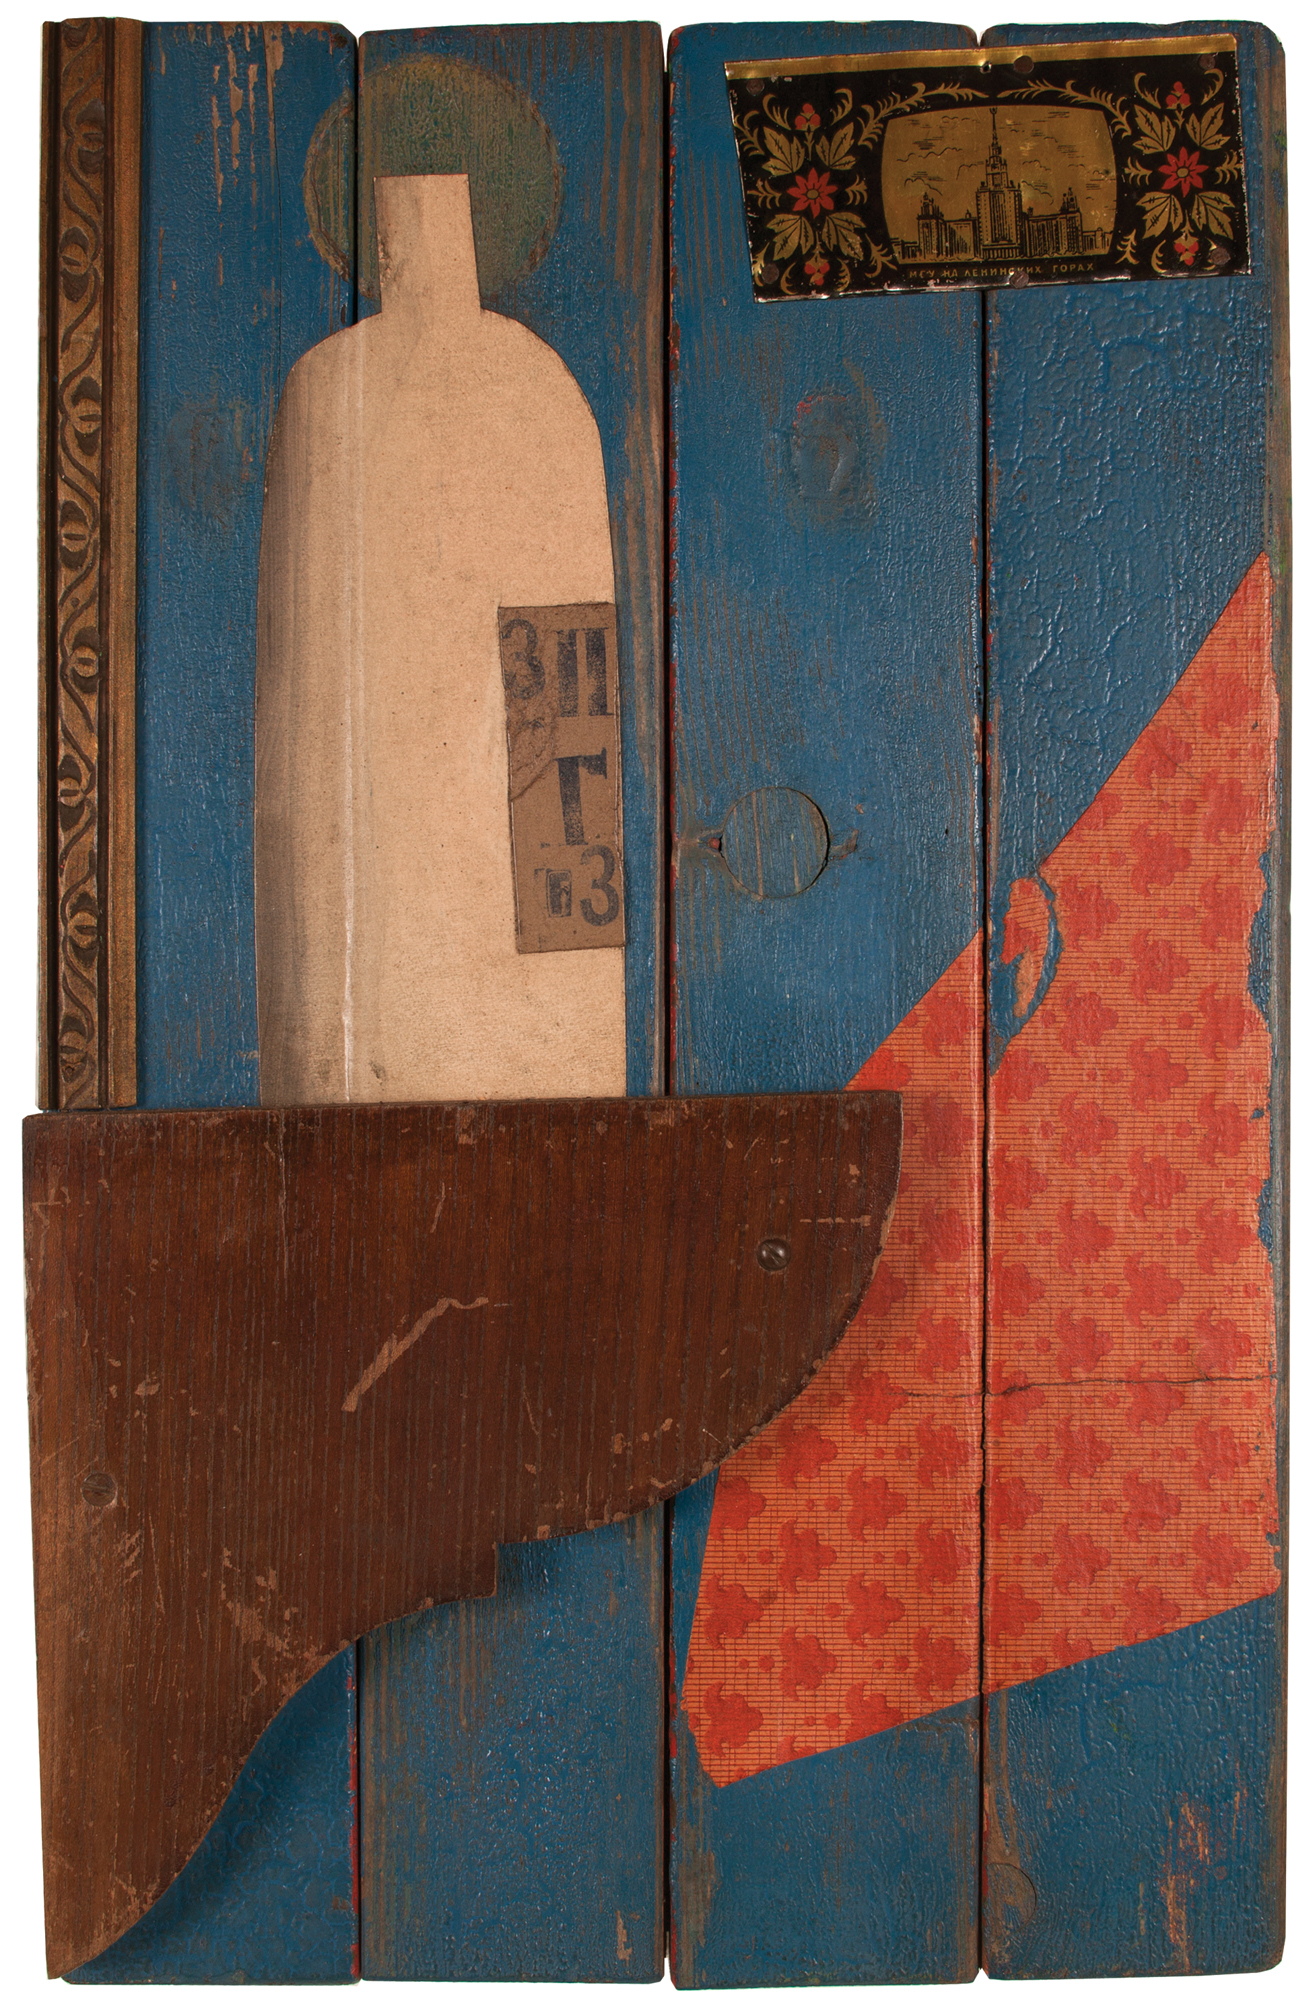 "Unattributed. Signed ""B"" in Russian, translates to ""V"". In the style of Vladimir Tatlin.Inscription on front, in Russian, translates to ""TEA ROOM"".  Collage element in upper right (facing) corner appears to be added later.  Mixed media wooden construction. 52 x 34 cm."